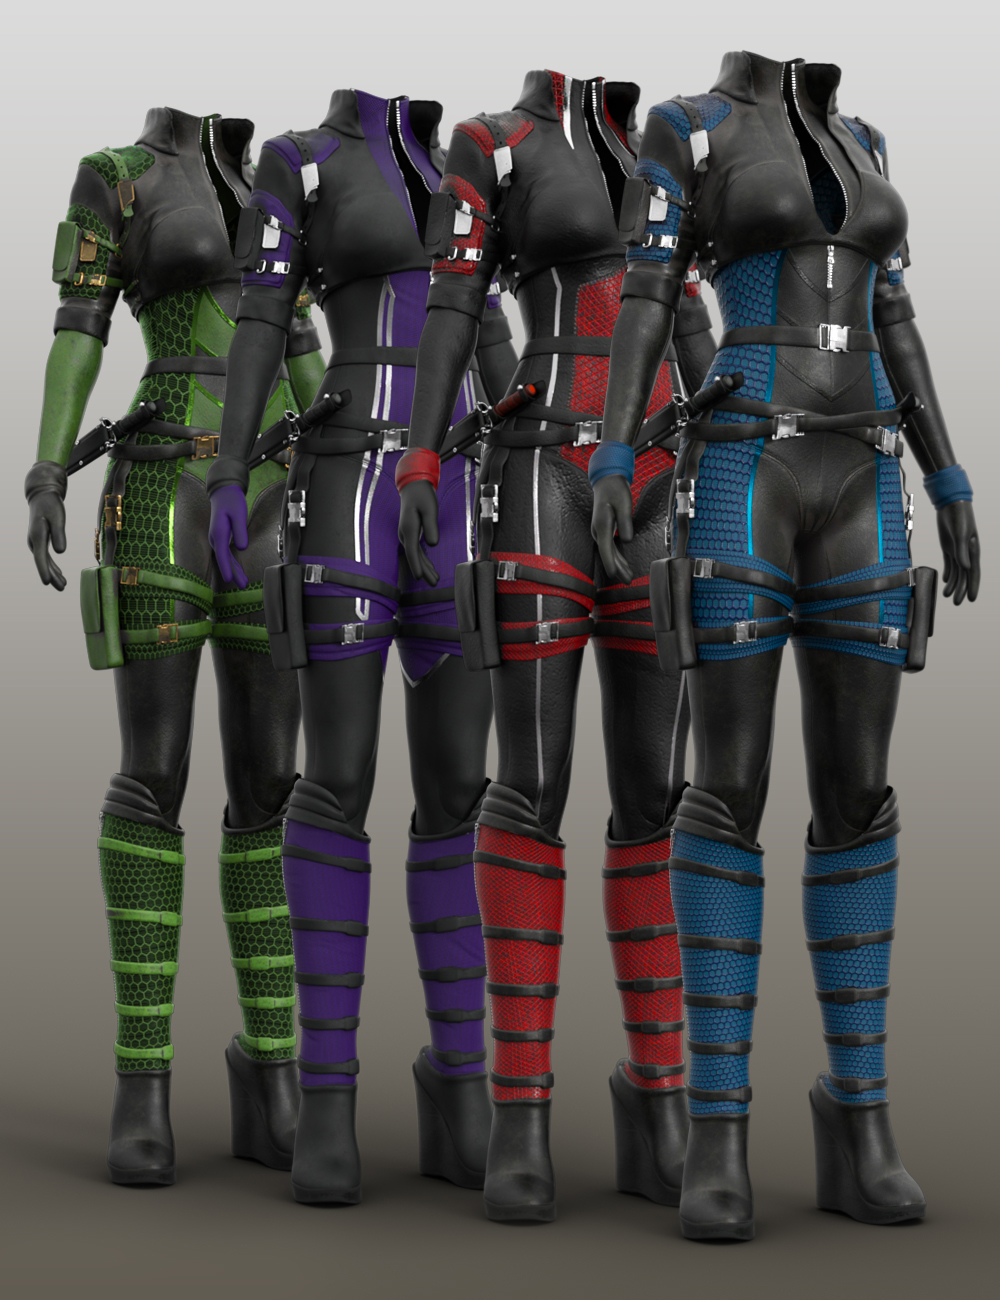 Trinity Wolf Outfit Textures by: Moonscape GraphicsSade, 3D Models by Daz 3D